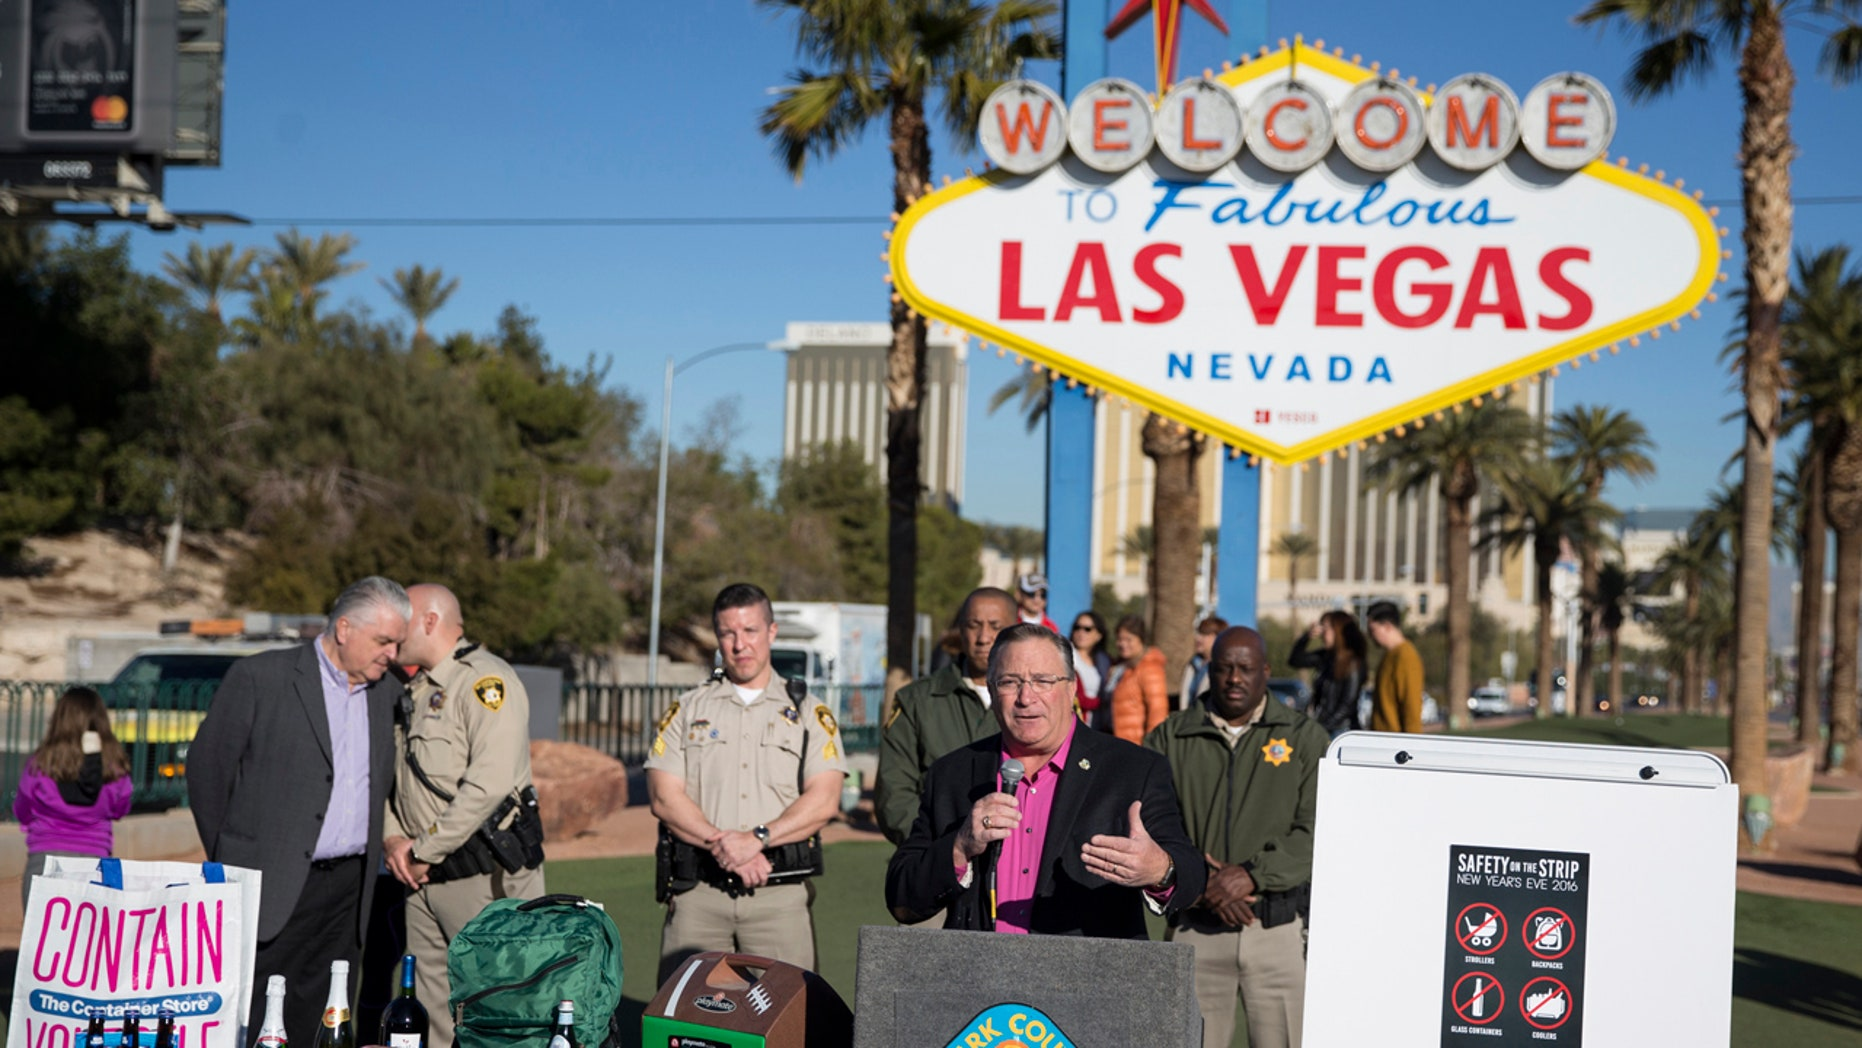 Las Vegas Mayor Pro Tem Steve Ross speaks during a press conference about the security plans for the 2017 New Year's celebrations on the Las Vegas Strip and downtown's Fremont Street Experience, Thursday, Dec. 29, 2016, in Las Vegas.